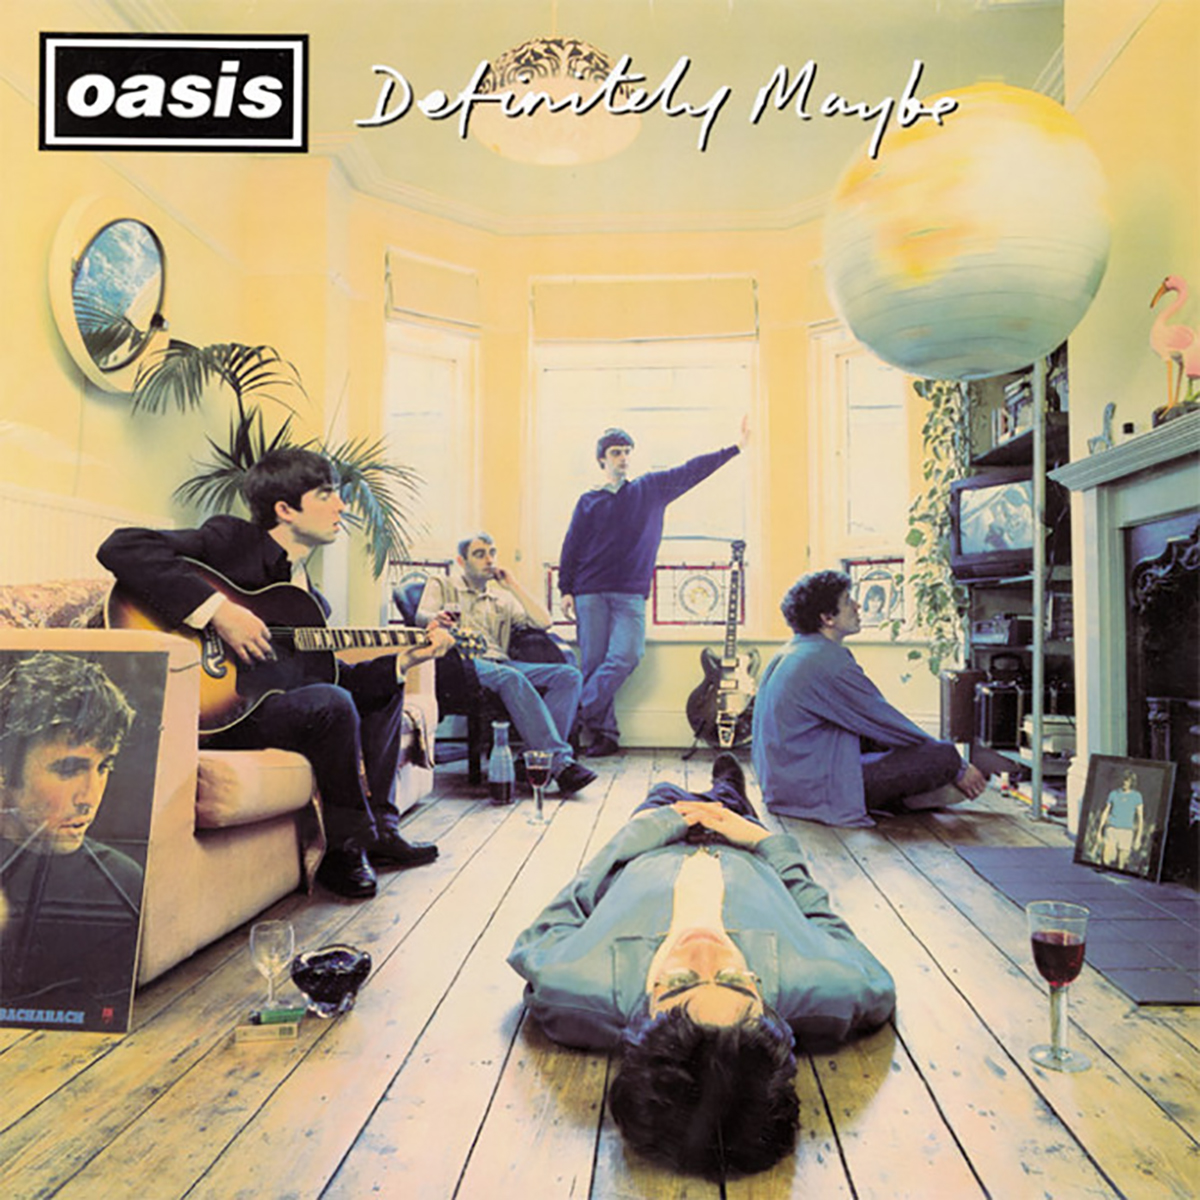 Oasis Definitely Maybe album cover